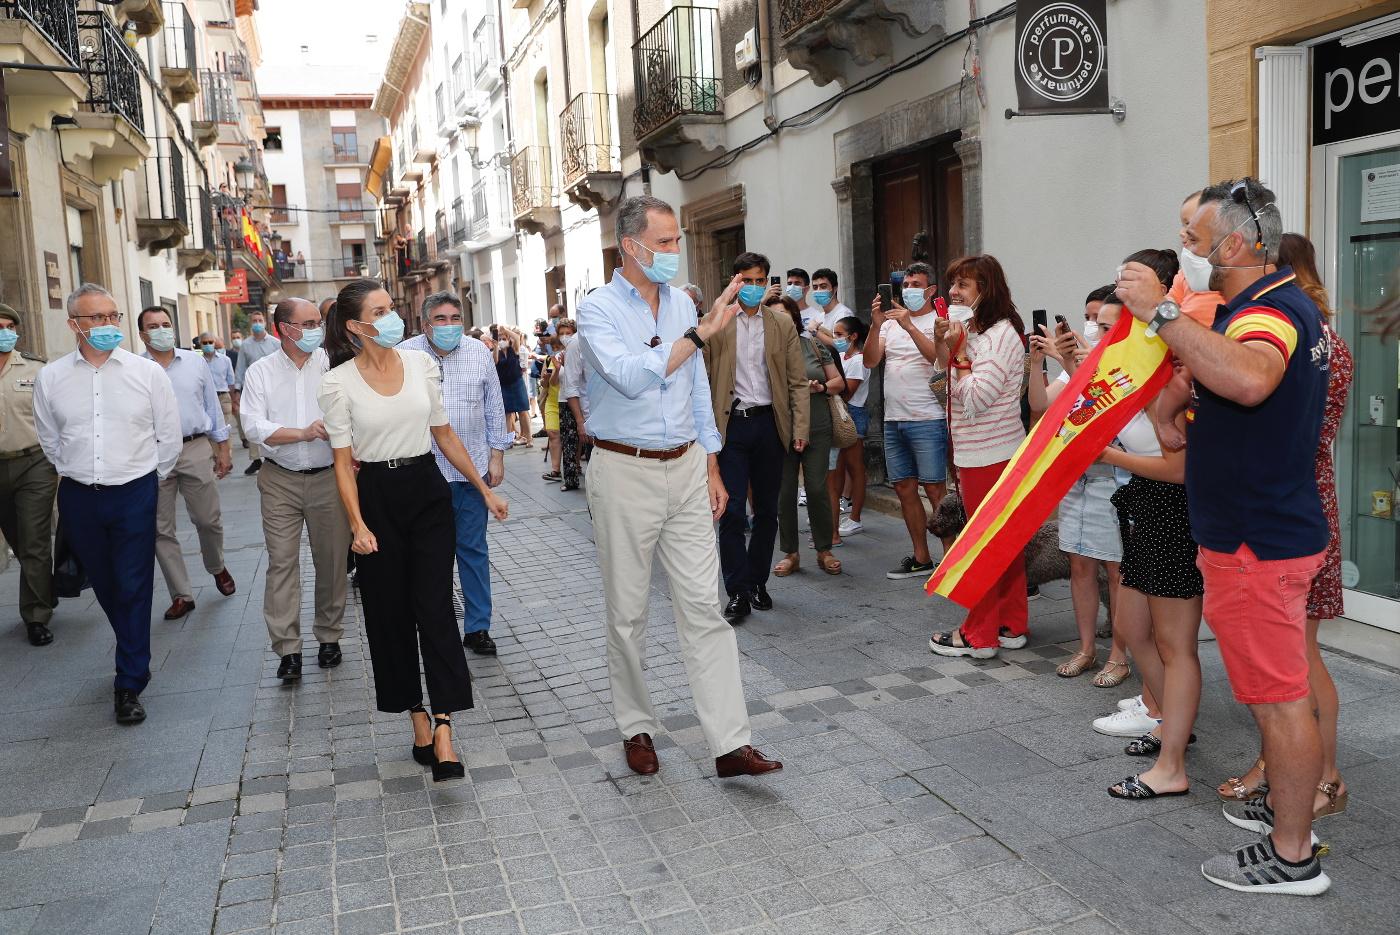 King Felipe and Queen Letizia during a walkabout in the streets of Jaca